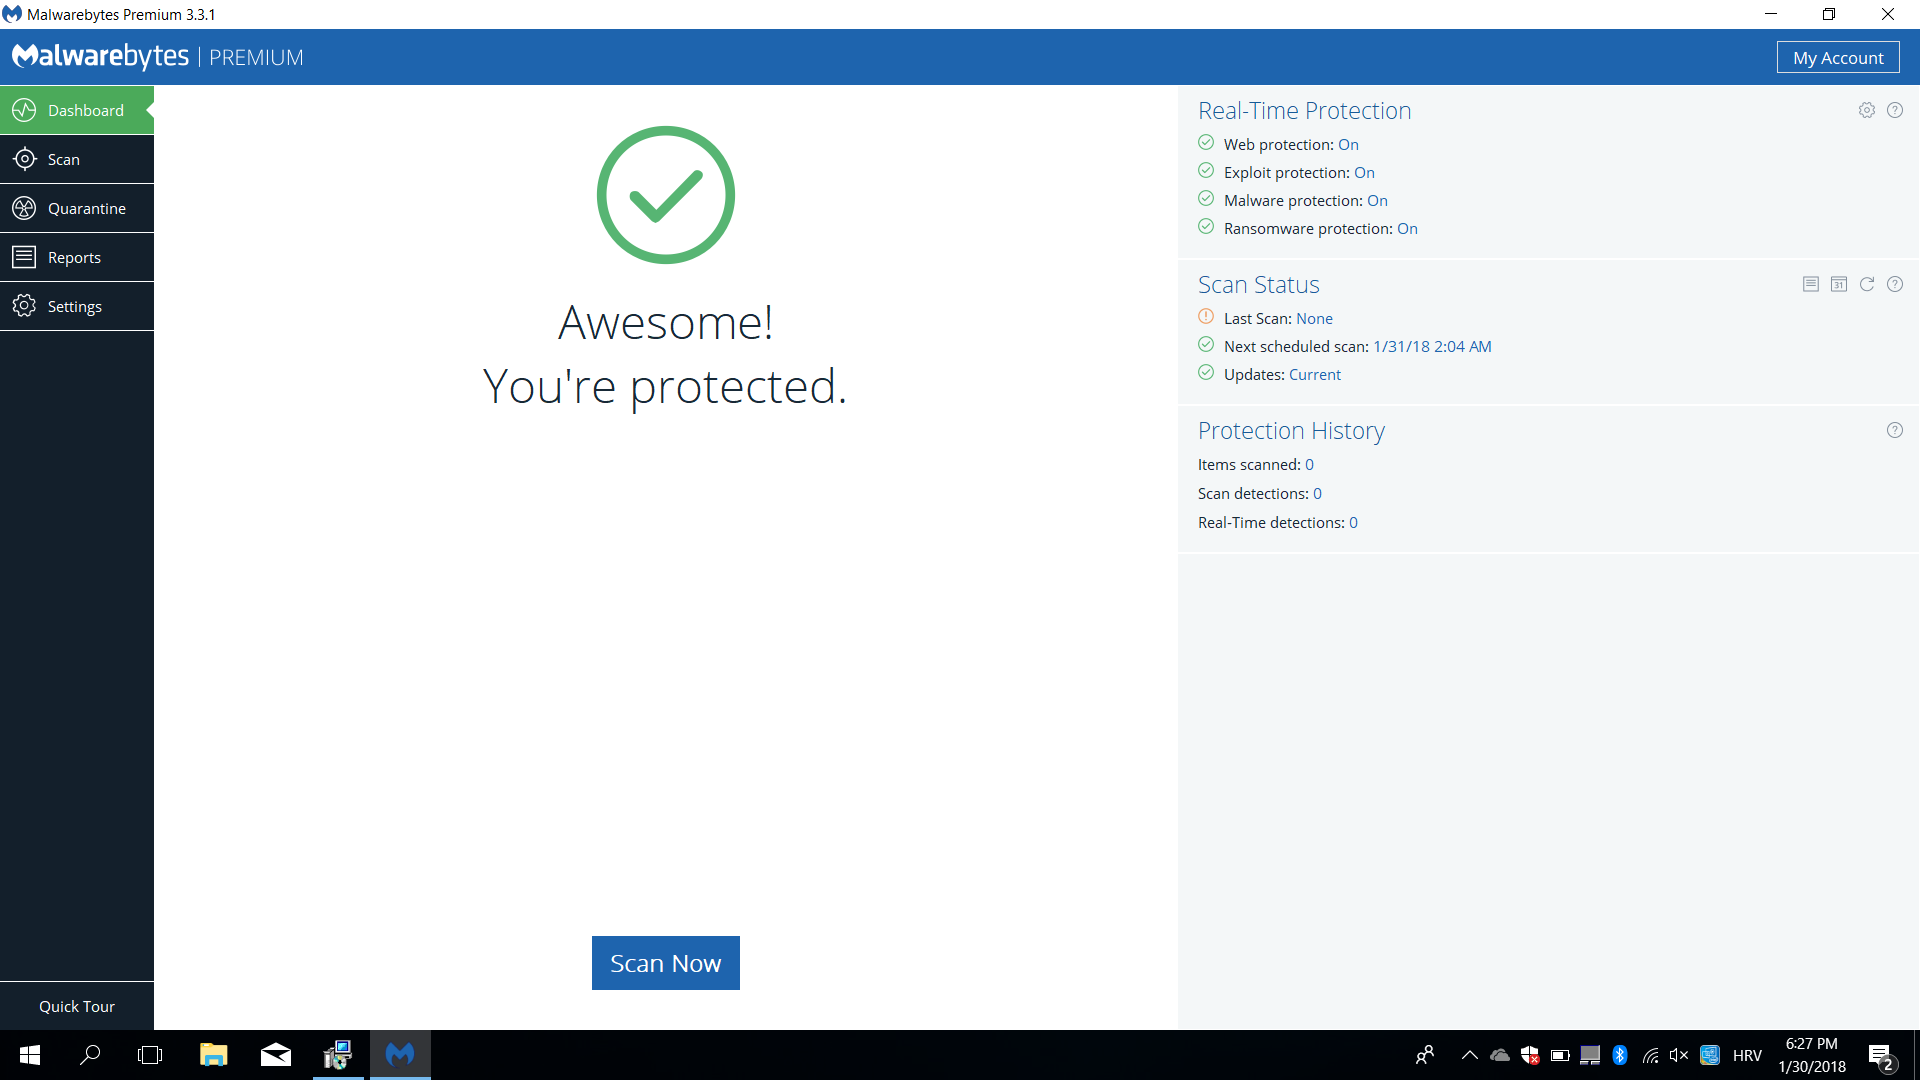 Direct - Malwarebytes Premium 3 3 1 2183 Dc 29 01 2018 | Team OS